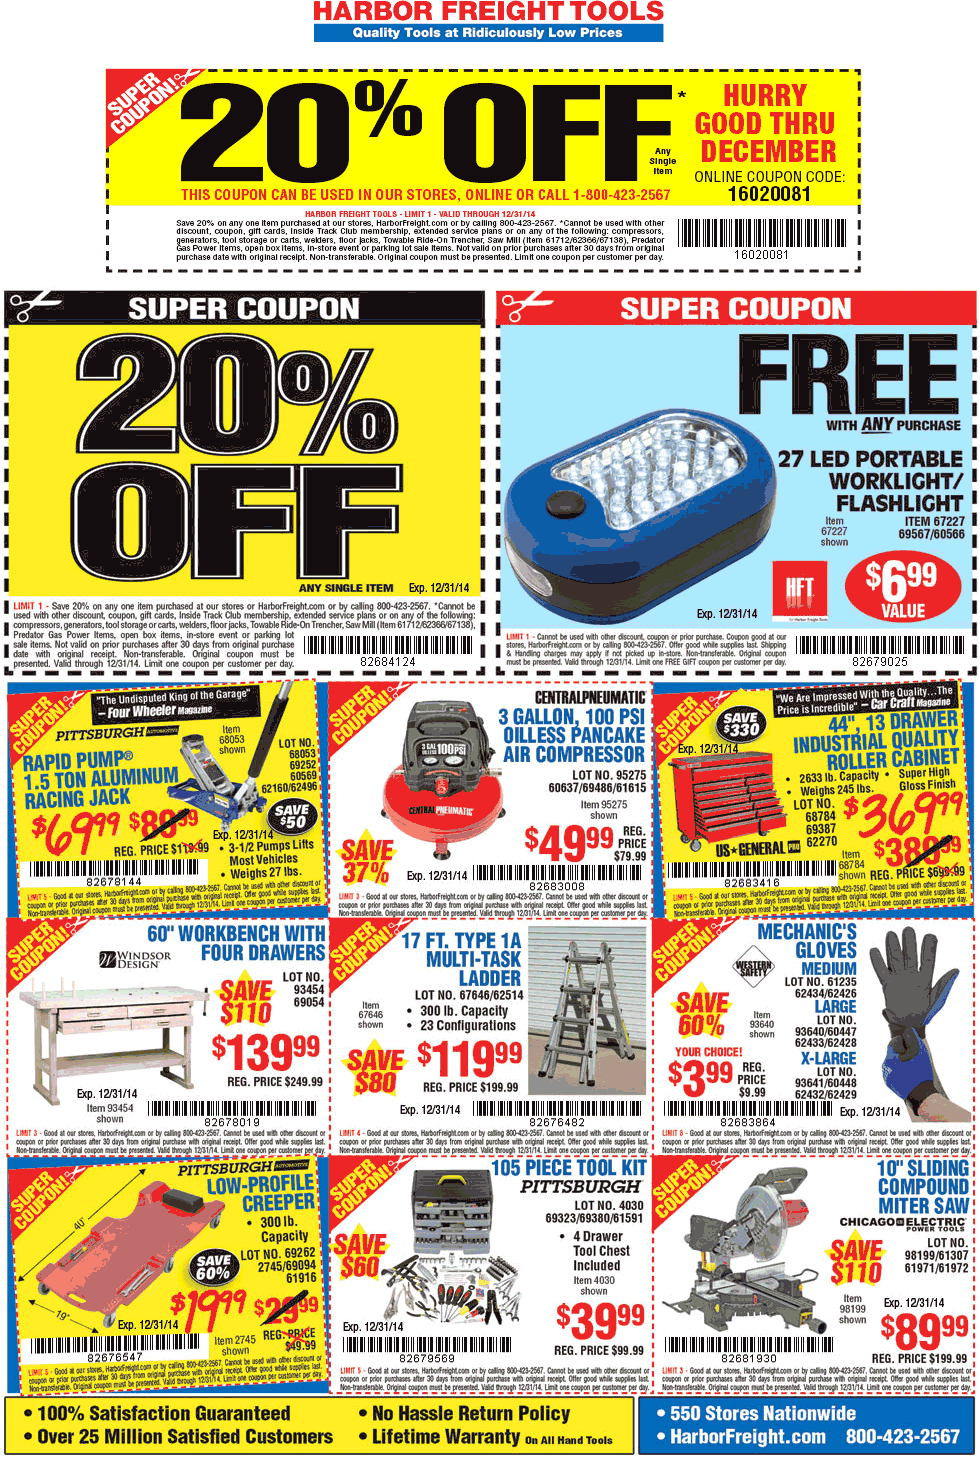 Harbor Freight Deal! Harbor freight coupon, Coupon apps